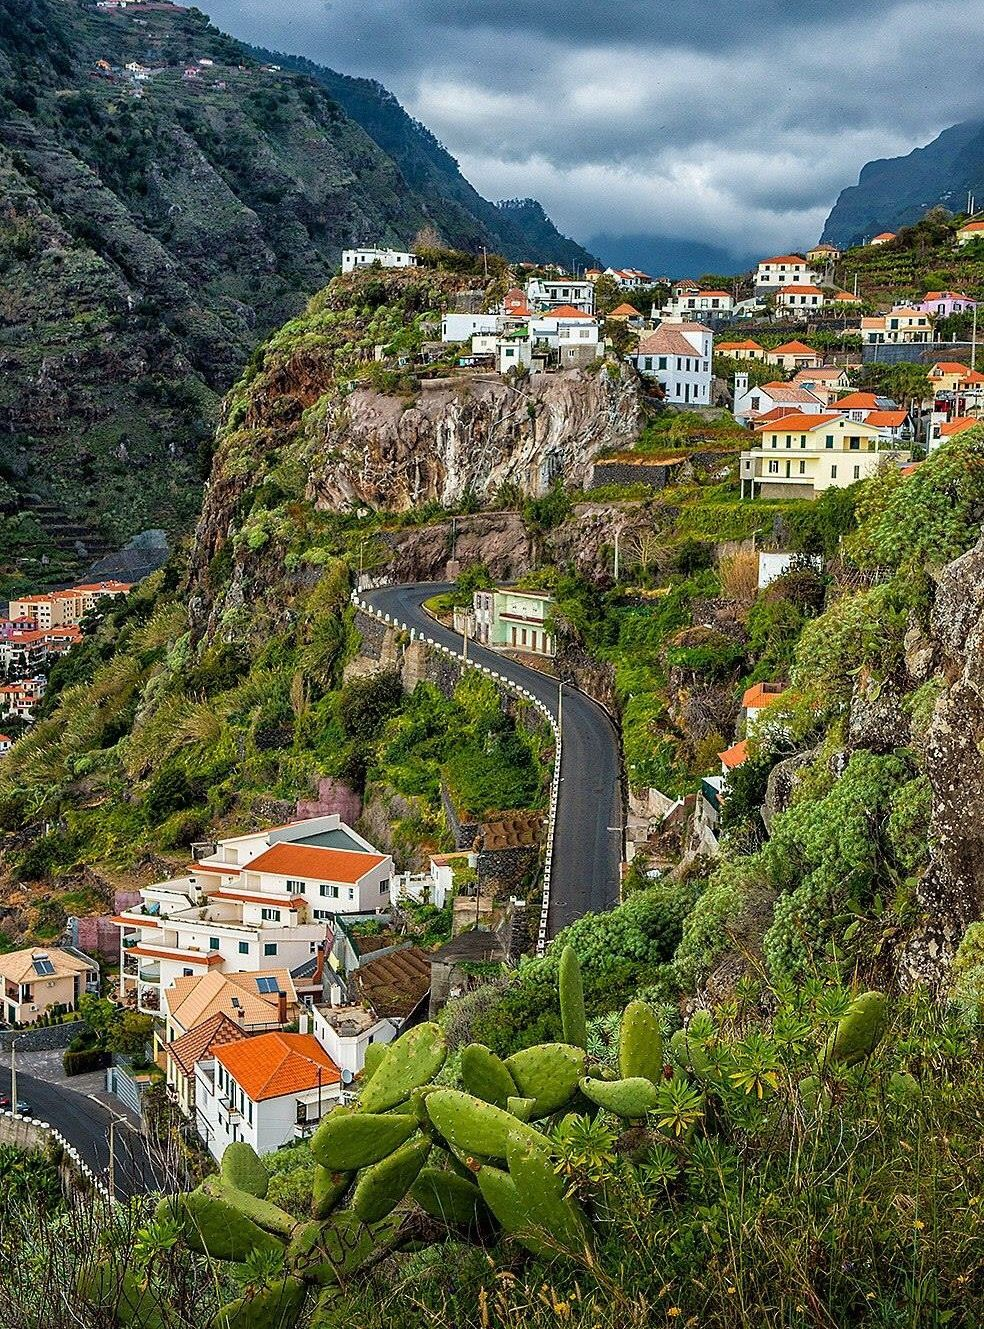 Old road from Ribeira Brava to Funchal .It takes much more time but the views are outstanding. For Property for sale along this location visit:www.madeirapropertyguide.com